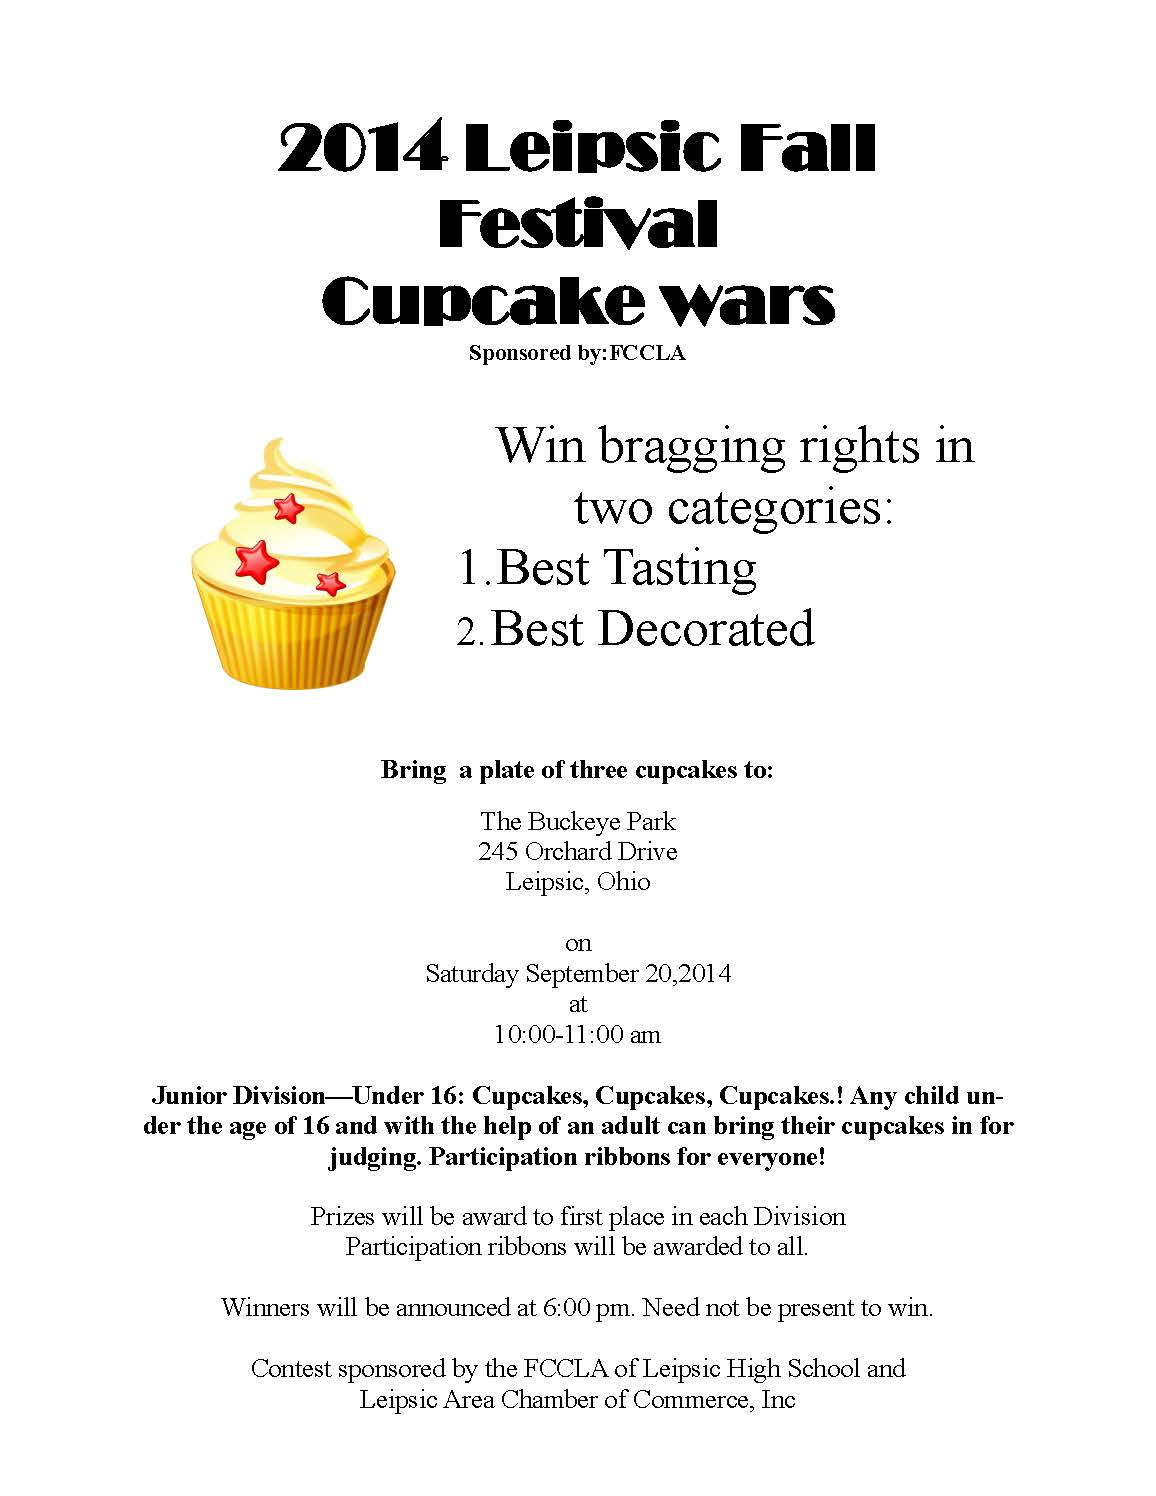 leipsic fall festival information cupcake wars flyer